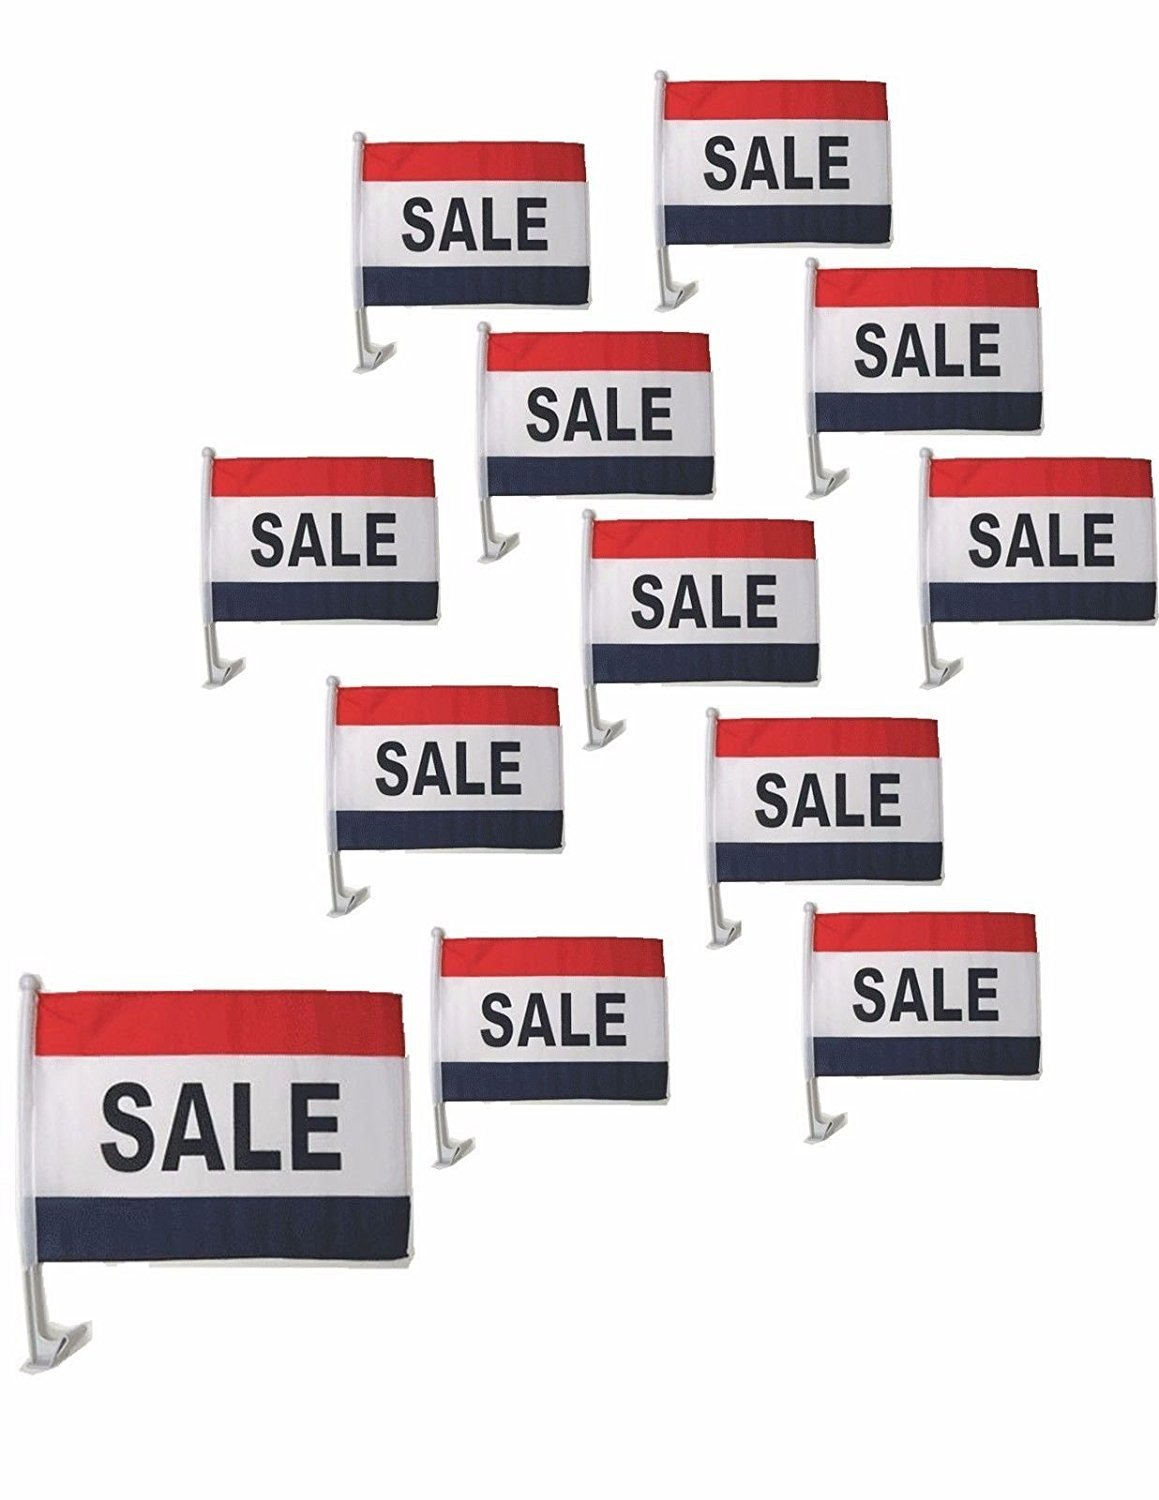 Red White And Blue Auto Sales >> Sale Red White Blue Car Window Clip On Flag Sold By The Dozen Starting At 22 80 Qty Discounts Perfect For Car Dealership 48